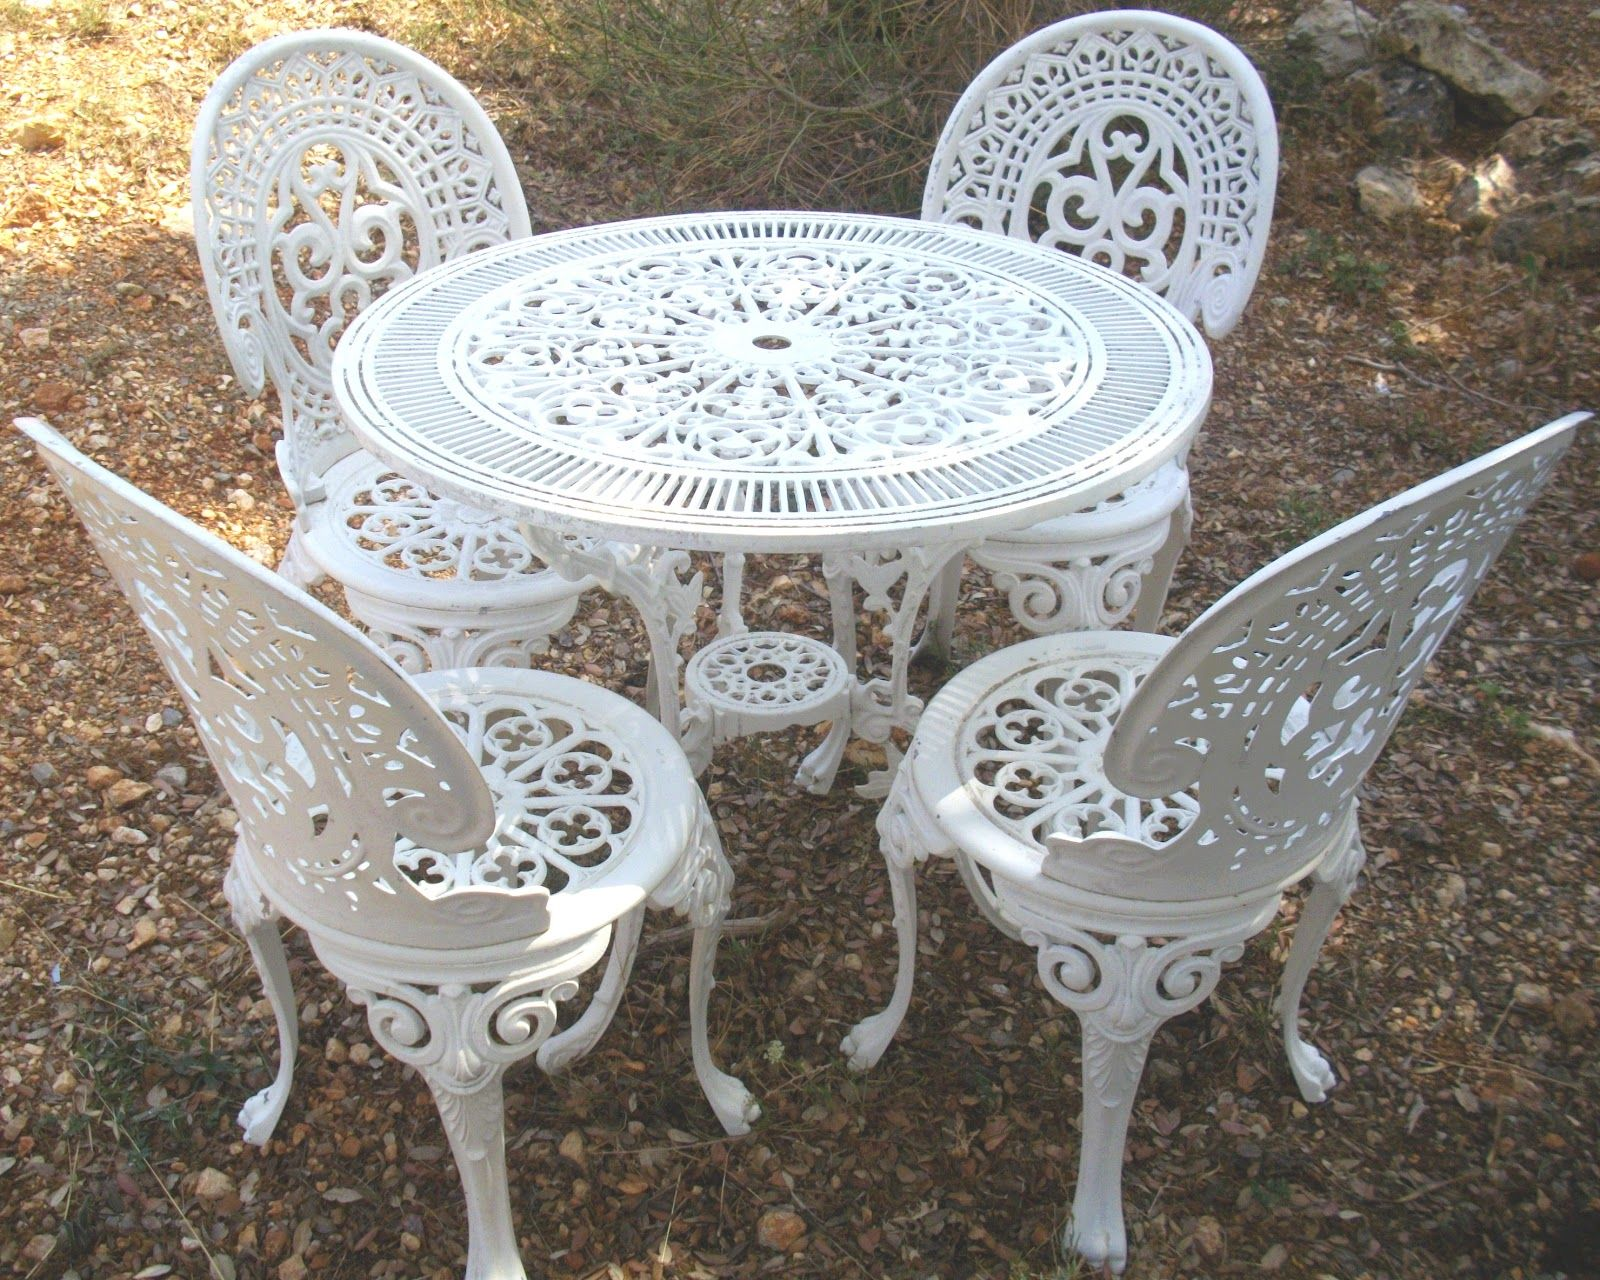 salon de jardin fonte laquée | Round outdoor dining table ...